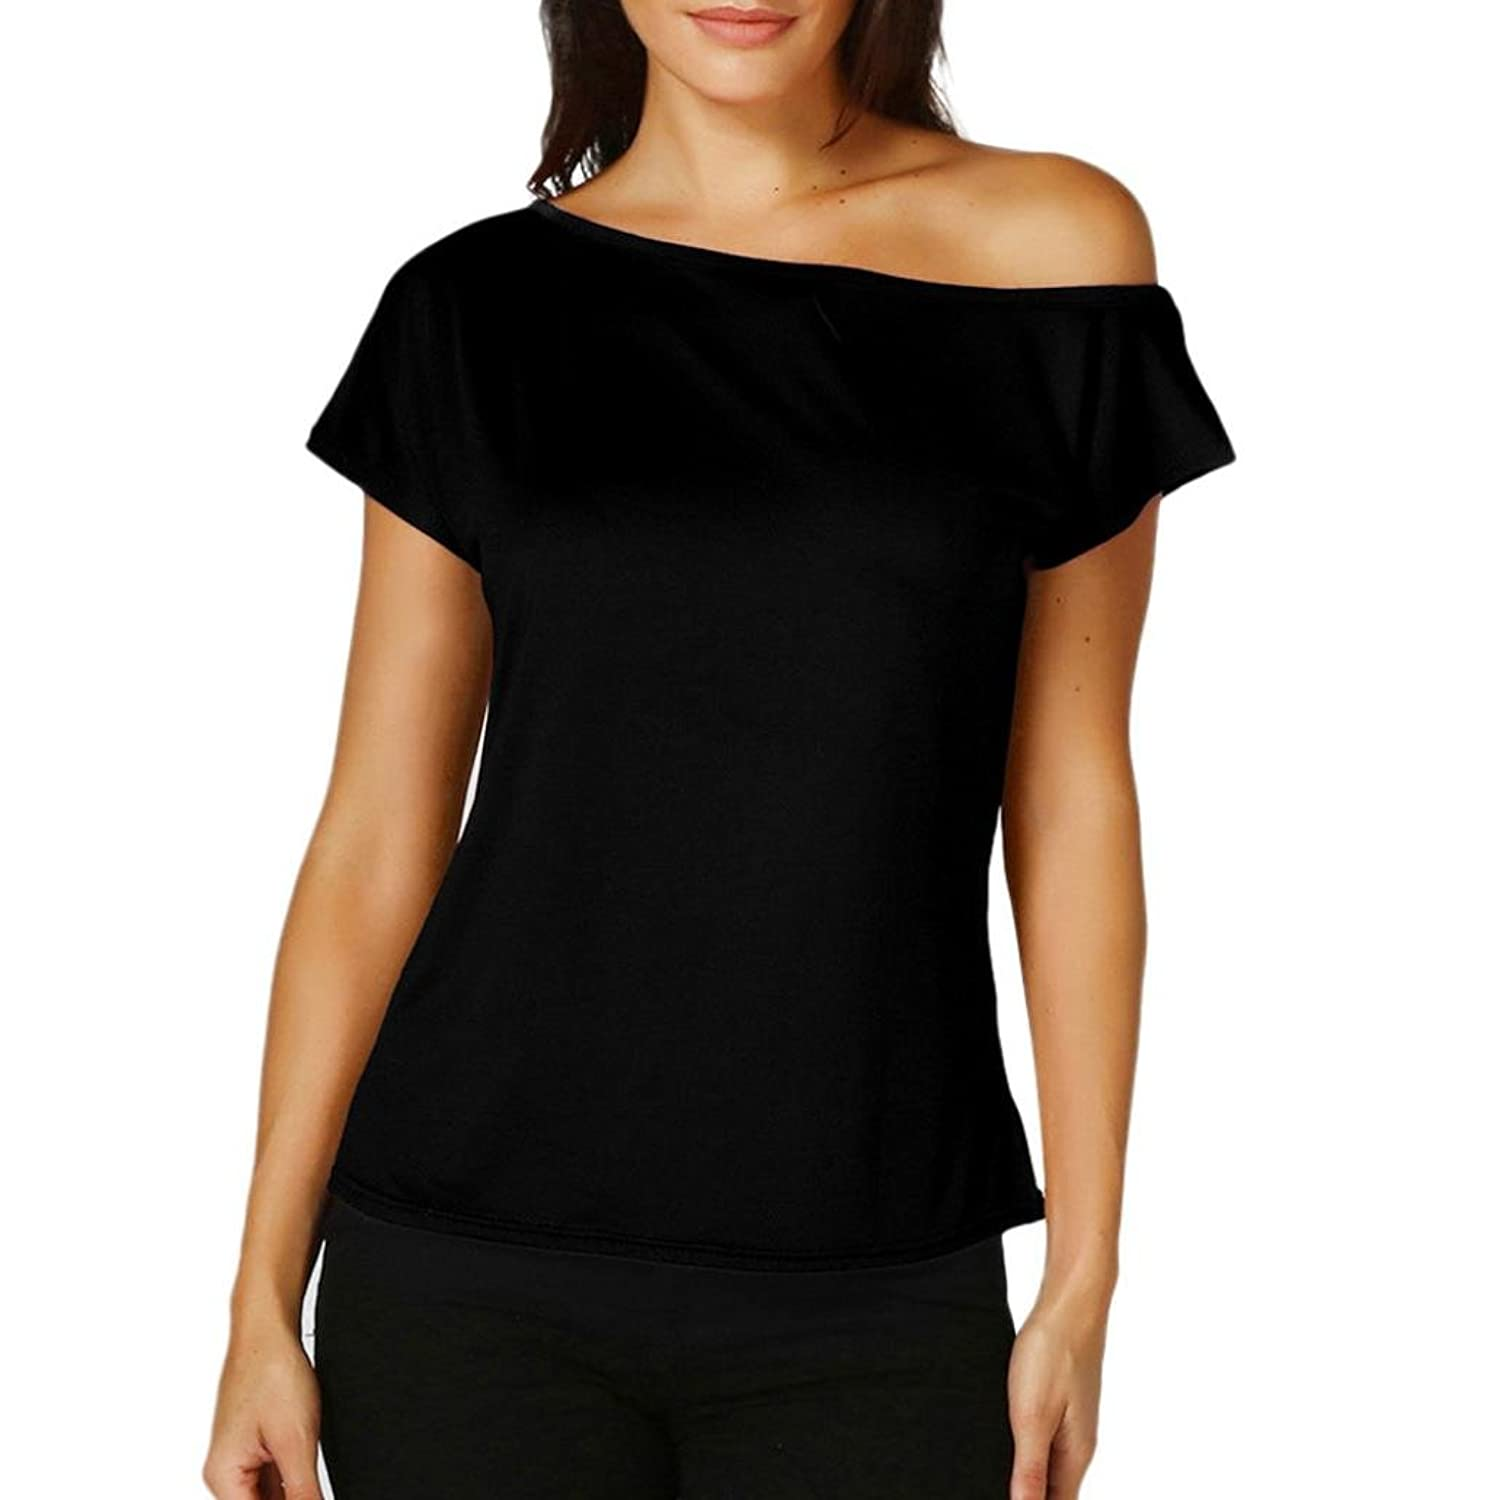 Amazon.com: Blouses for Womens, FORUU Laides One Shoulder Short Sleeve Solid Tops T Shirts: Clothing